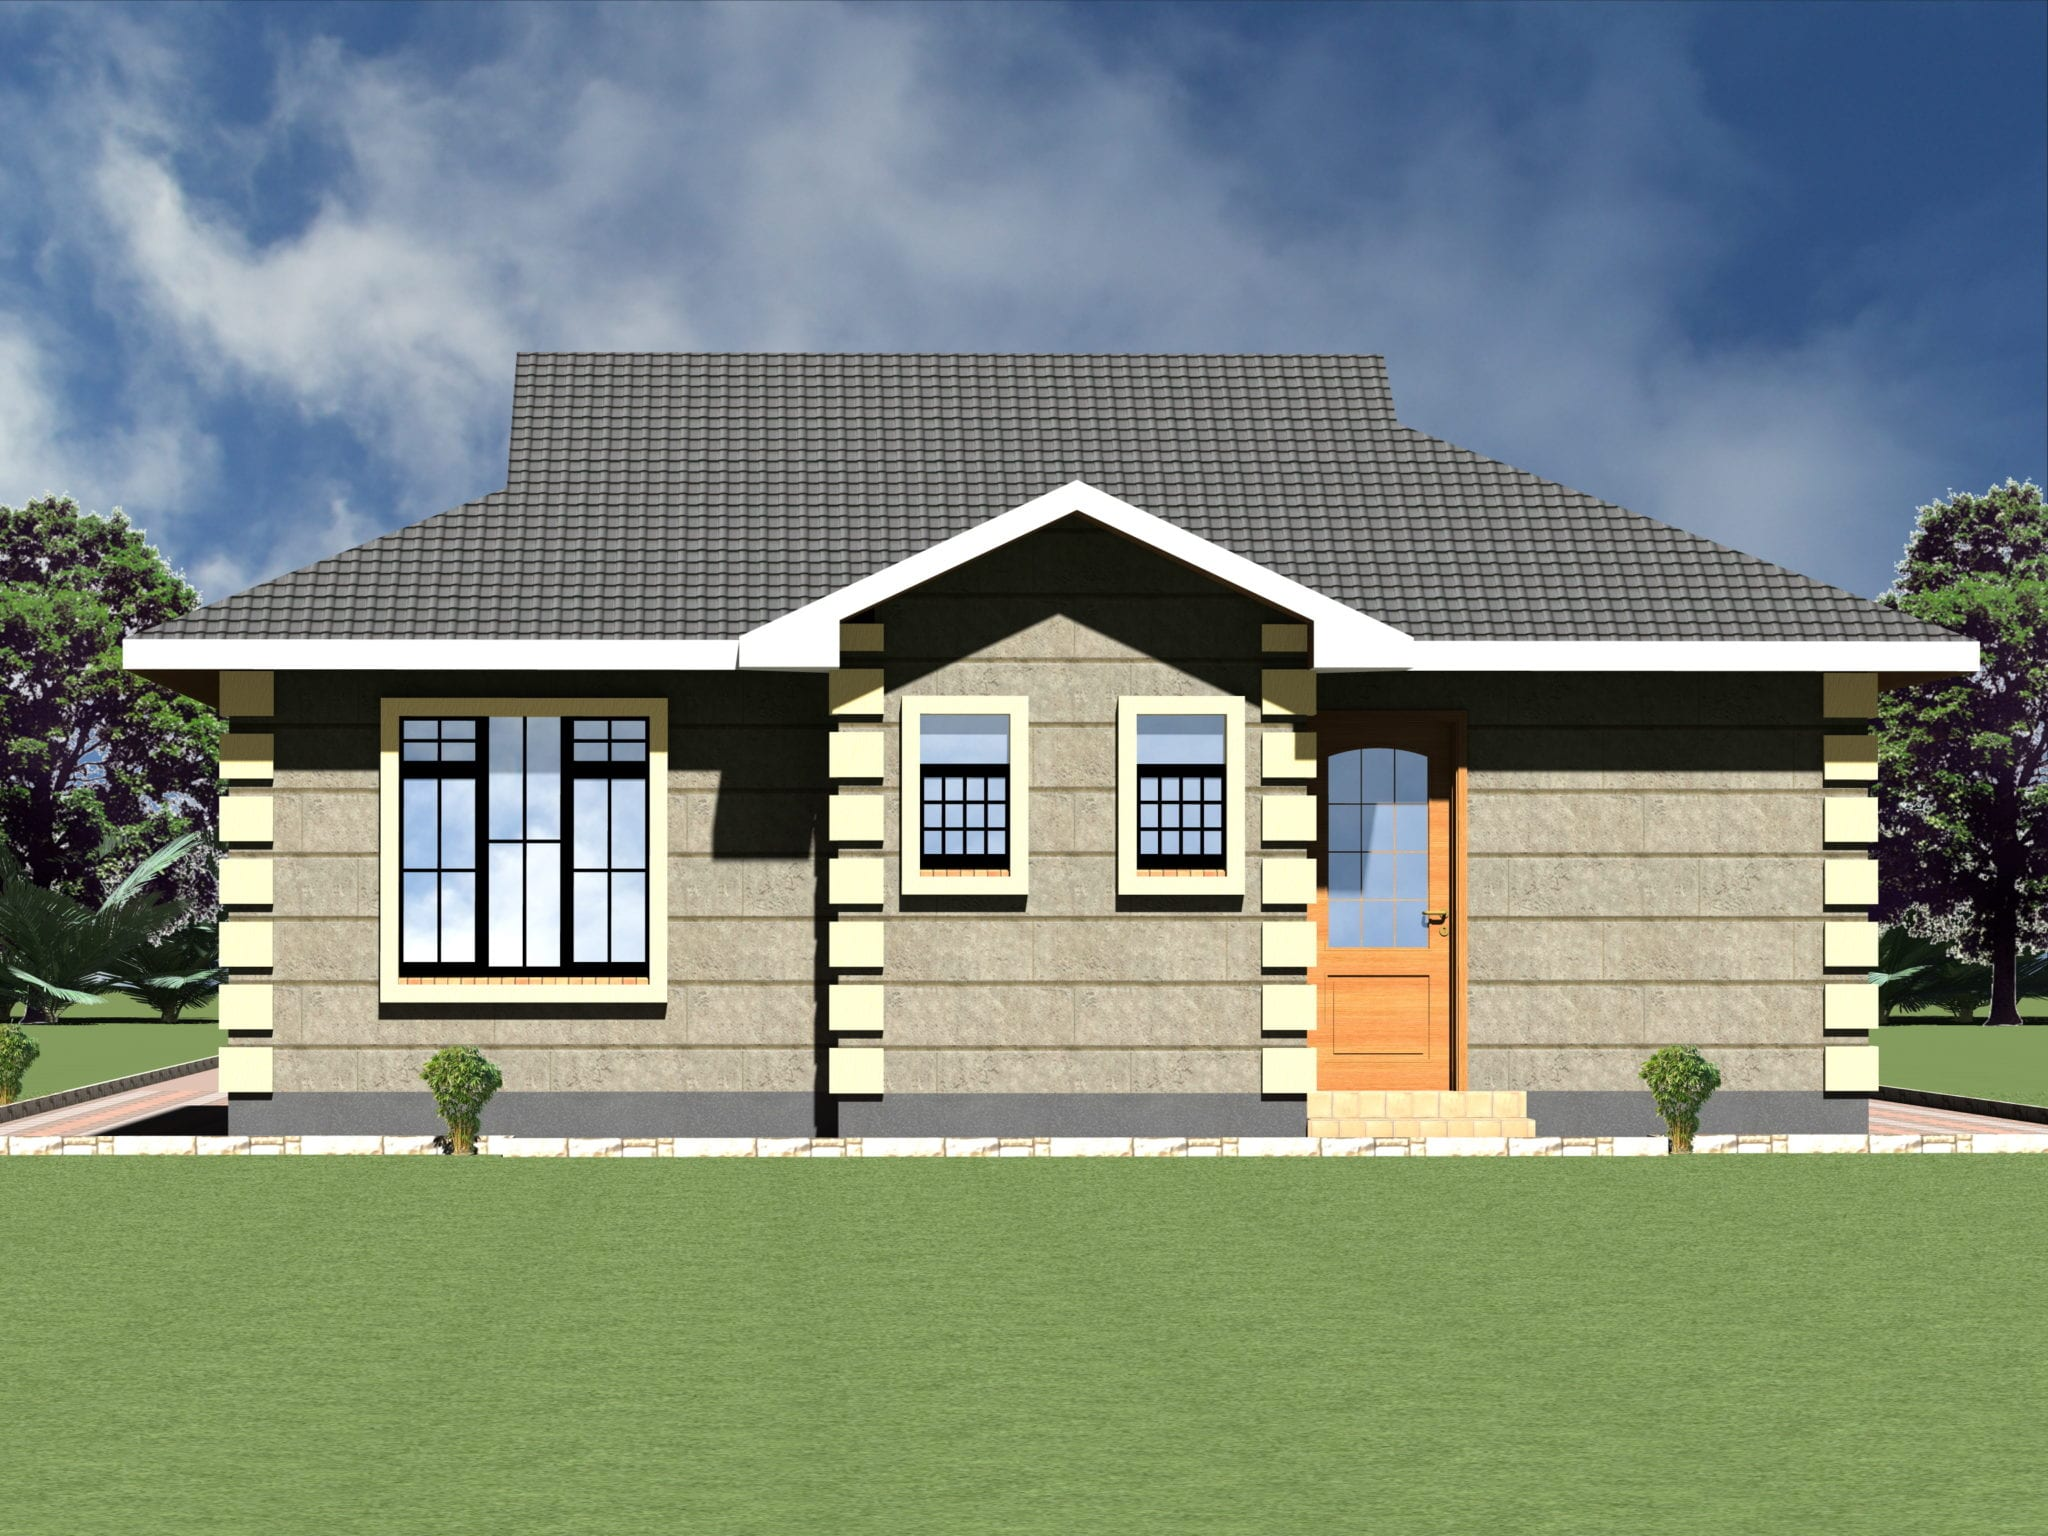 House designs in kenya and cost |HPD Consult